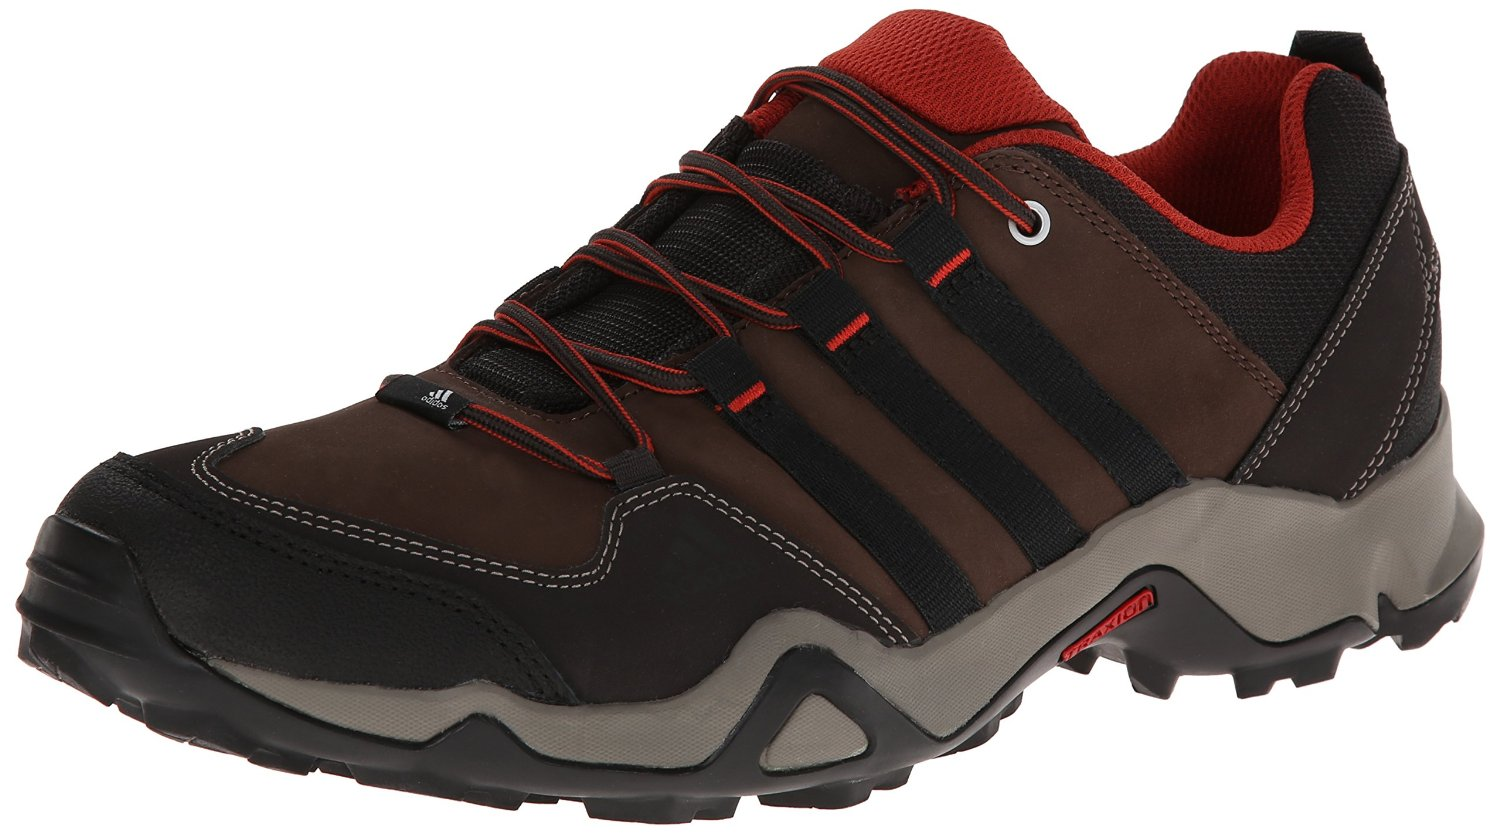 Image of Adidas - Mens Brushwood Leather Hiking Shoes